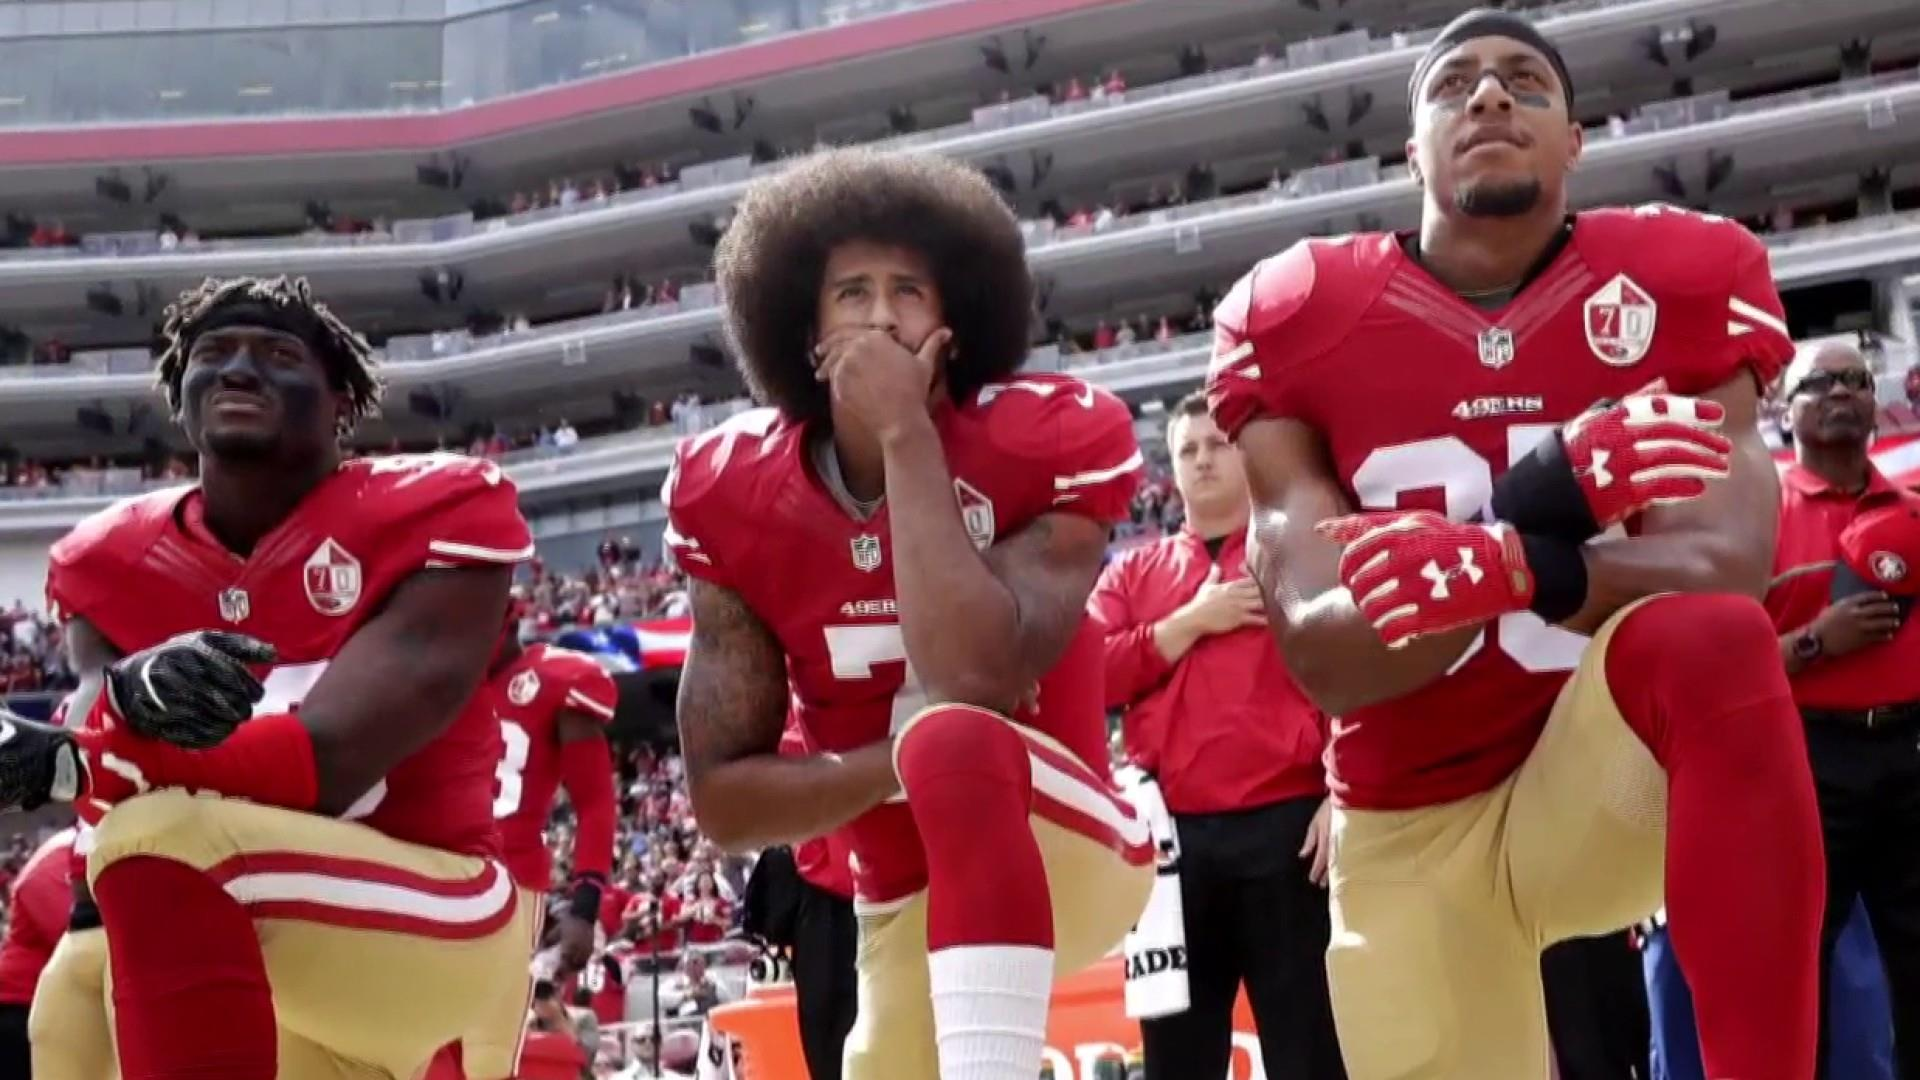 Jamil Smith: Let's not blame NFL players for political mess this has become